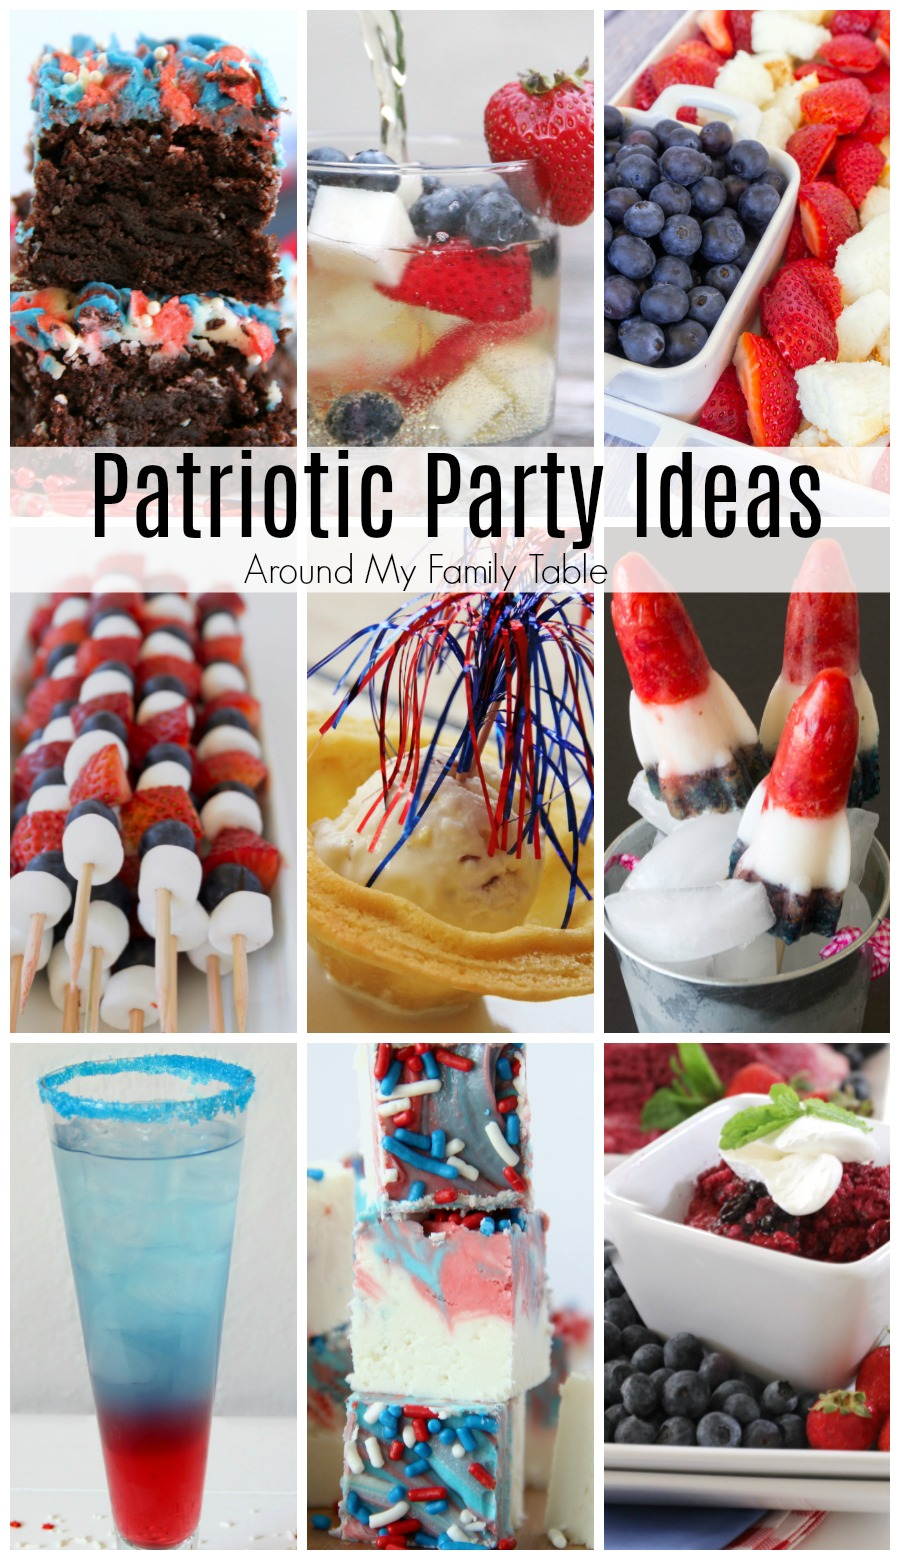 If you are gearing up for a big summer BBQ these Patriotic Party Ideas are sure to get you in the spirit.These red, white, & blue recipe ideas are perfect for any party where you want to show your patriotism.